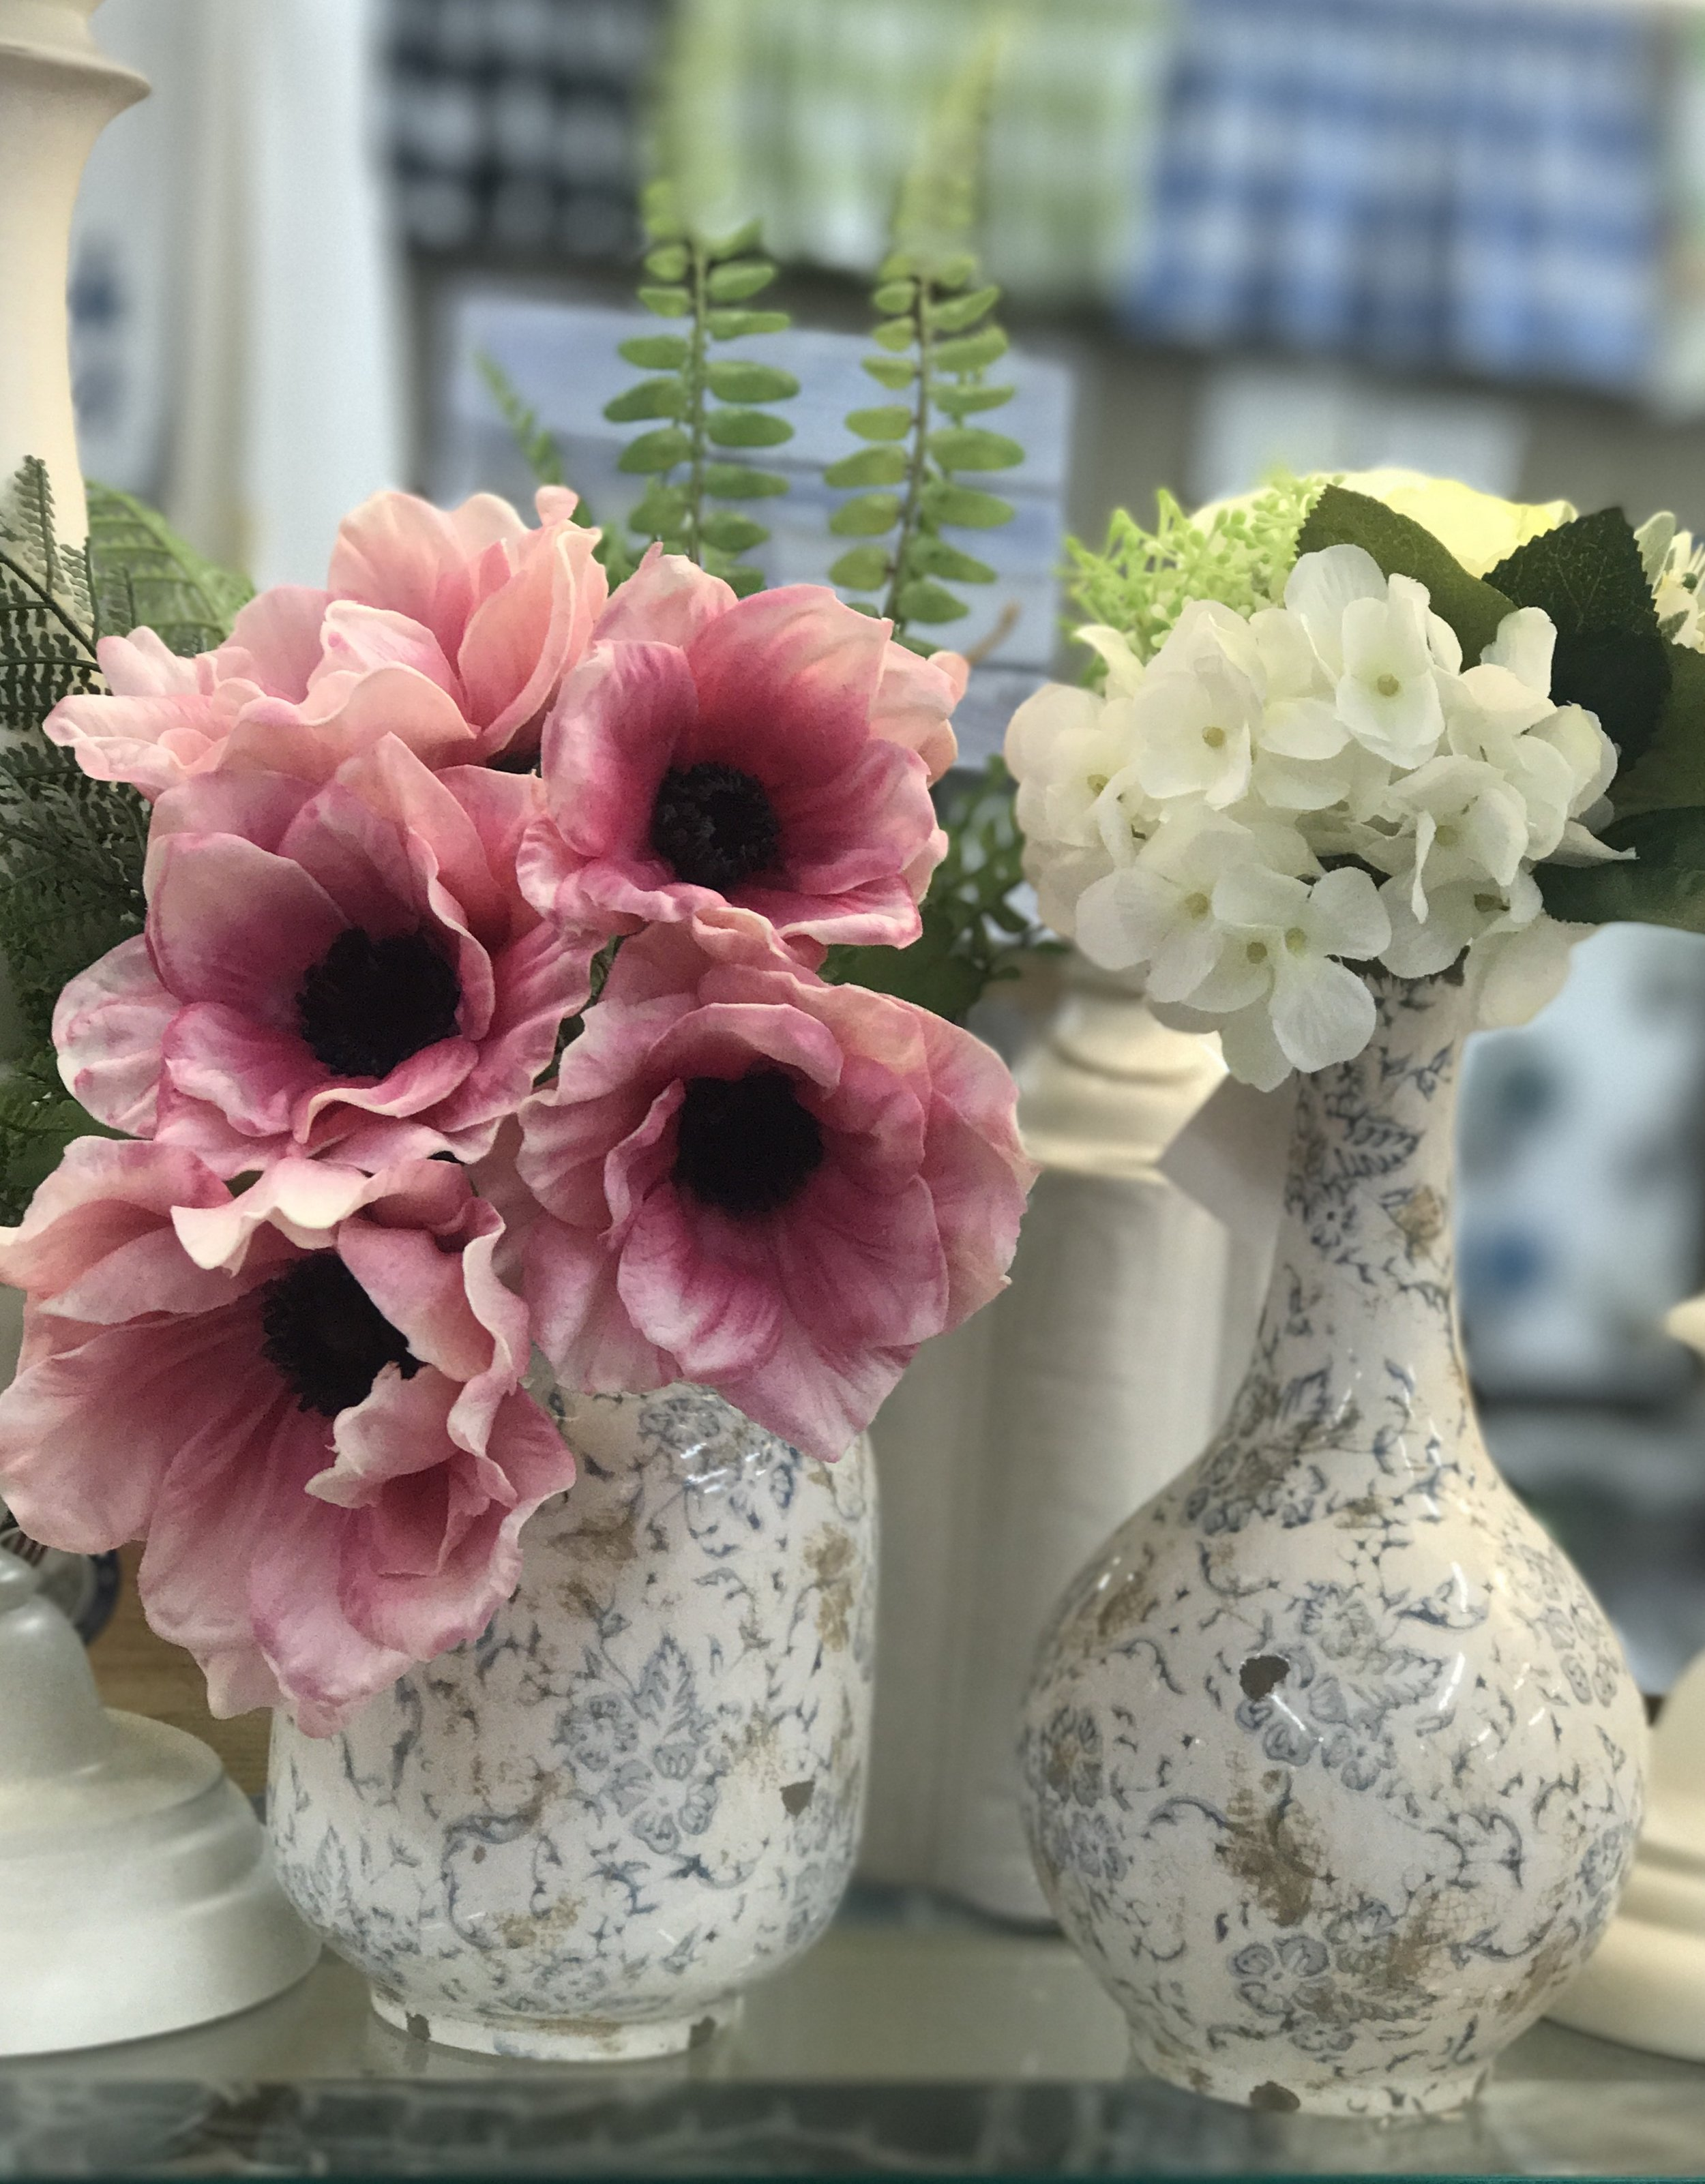 Small Grey and White Vases with Florals